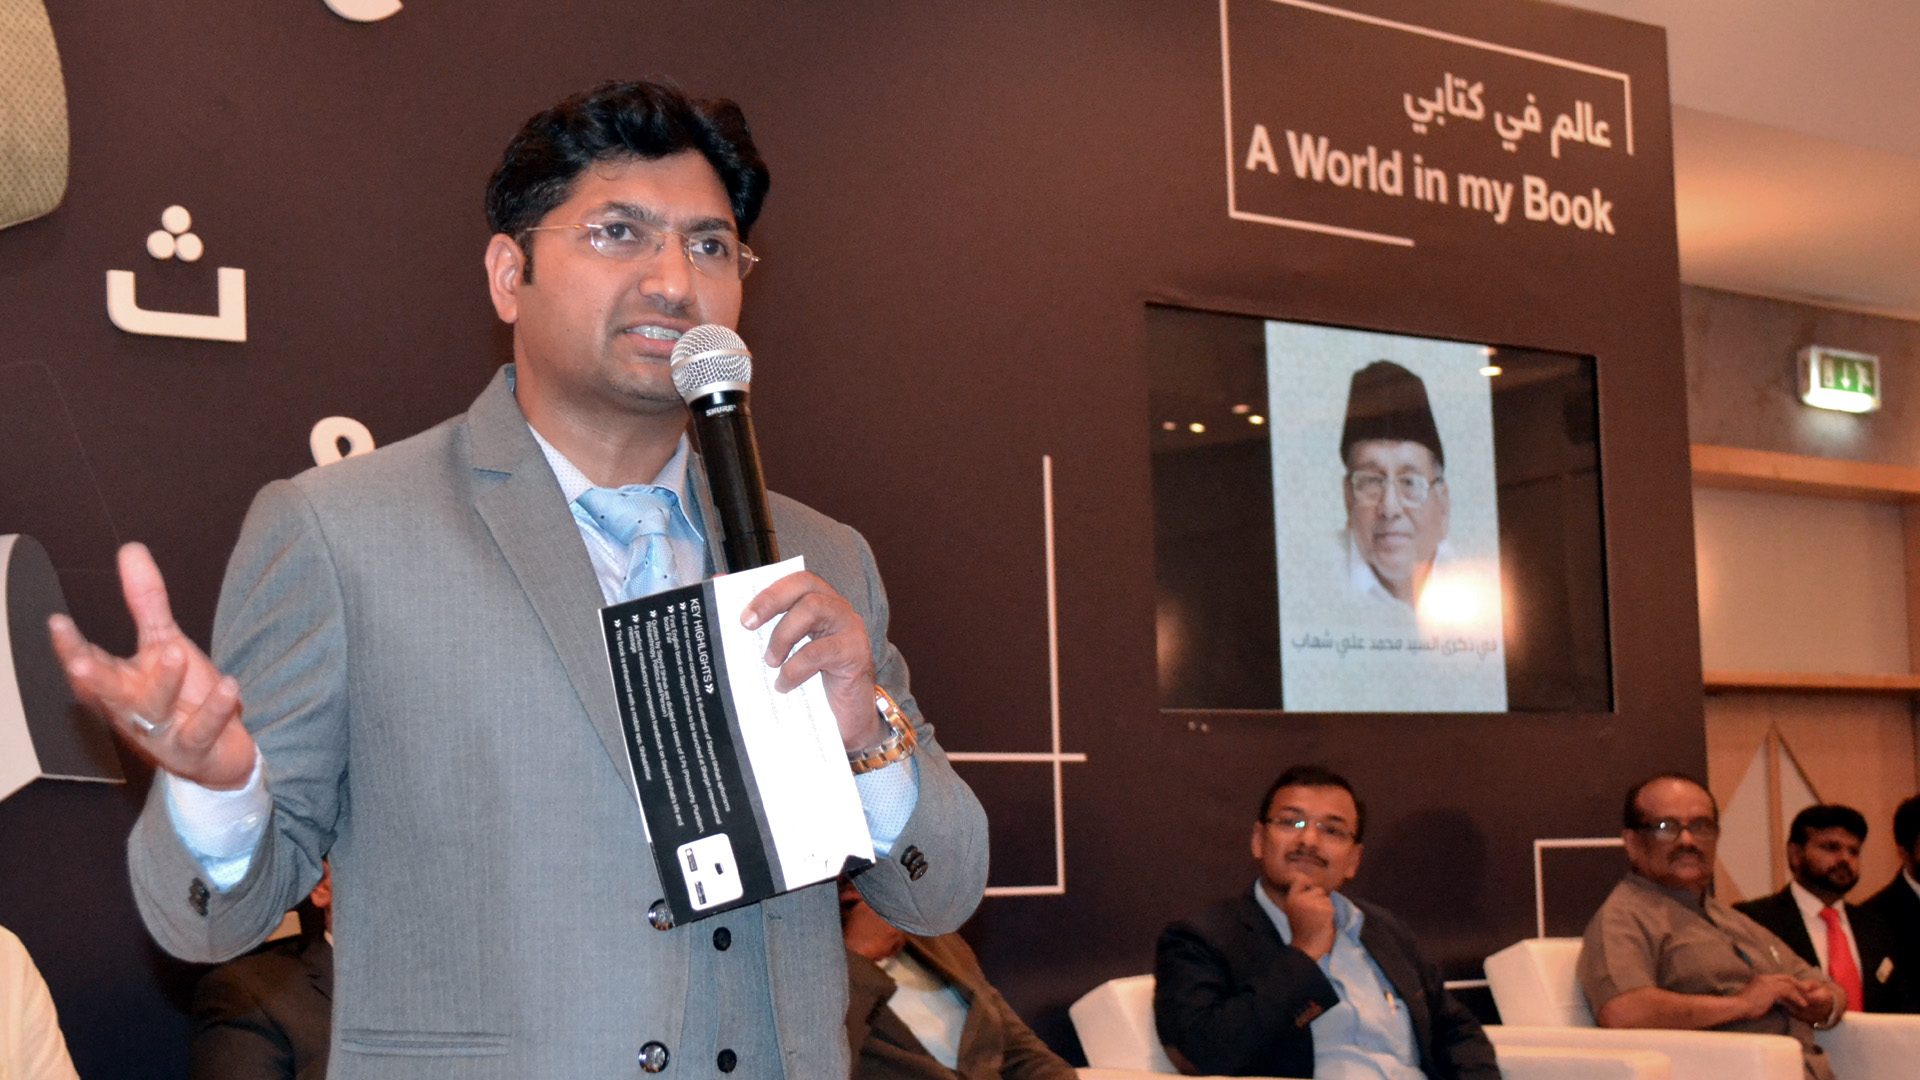 Jaihoon speaking at the launching ceremony of Slogans of the Sage